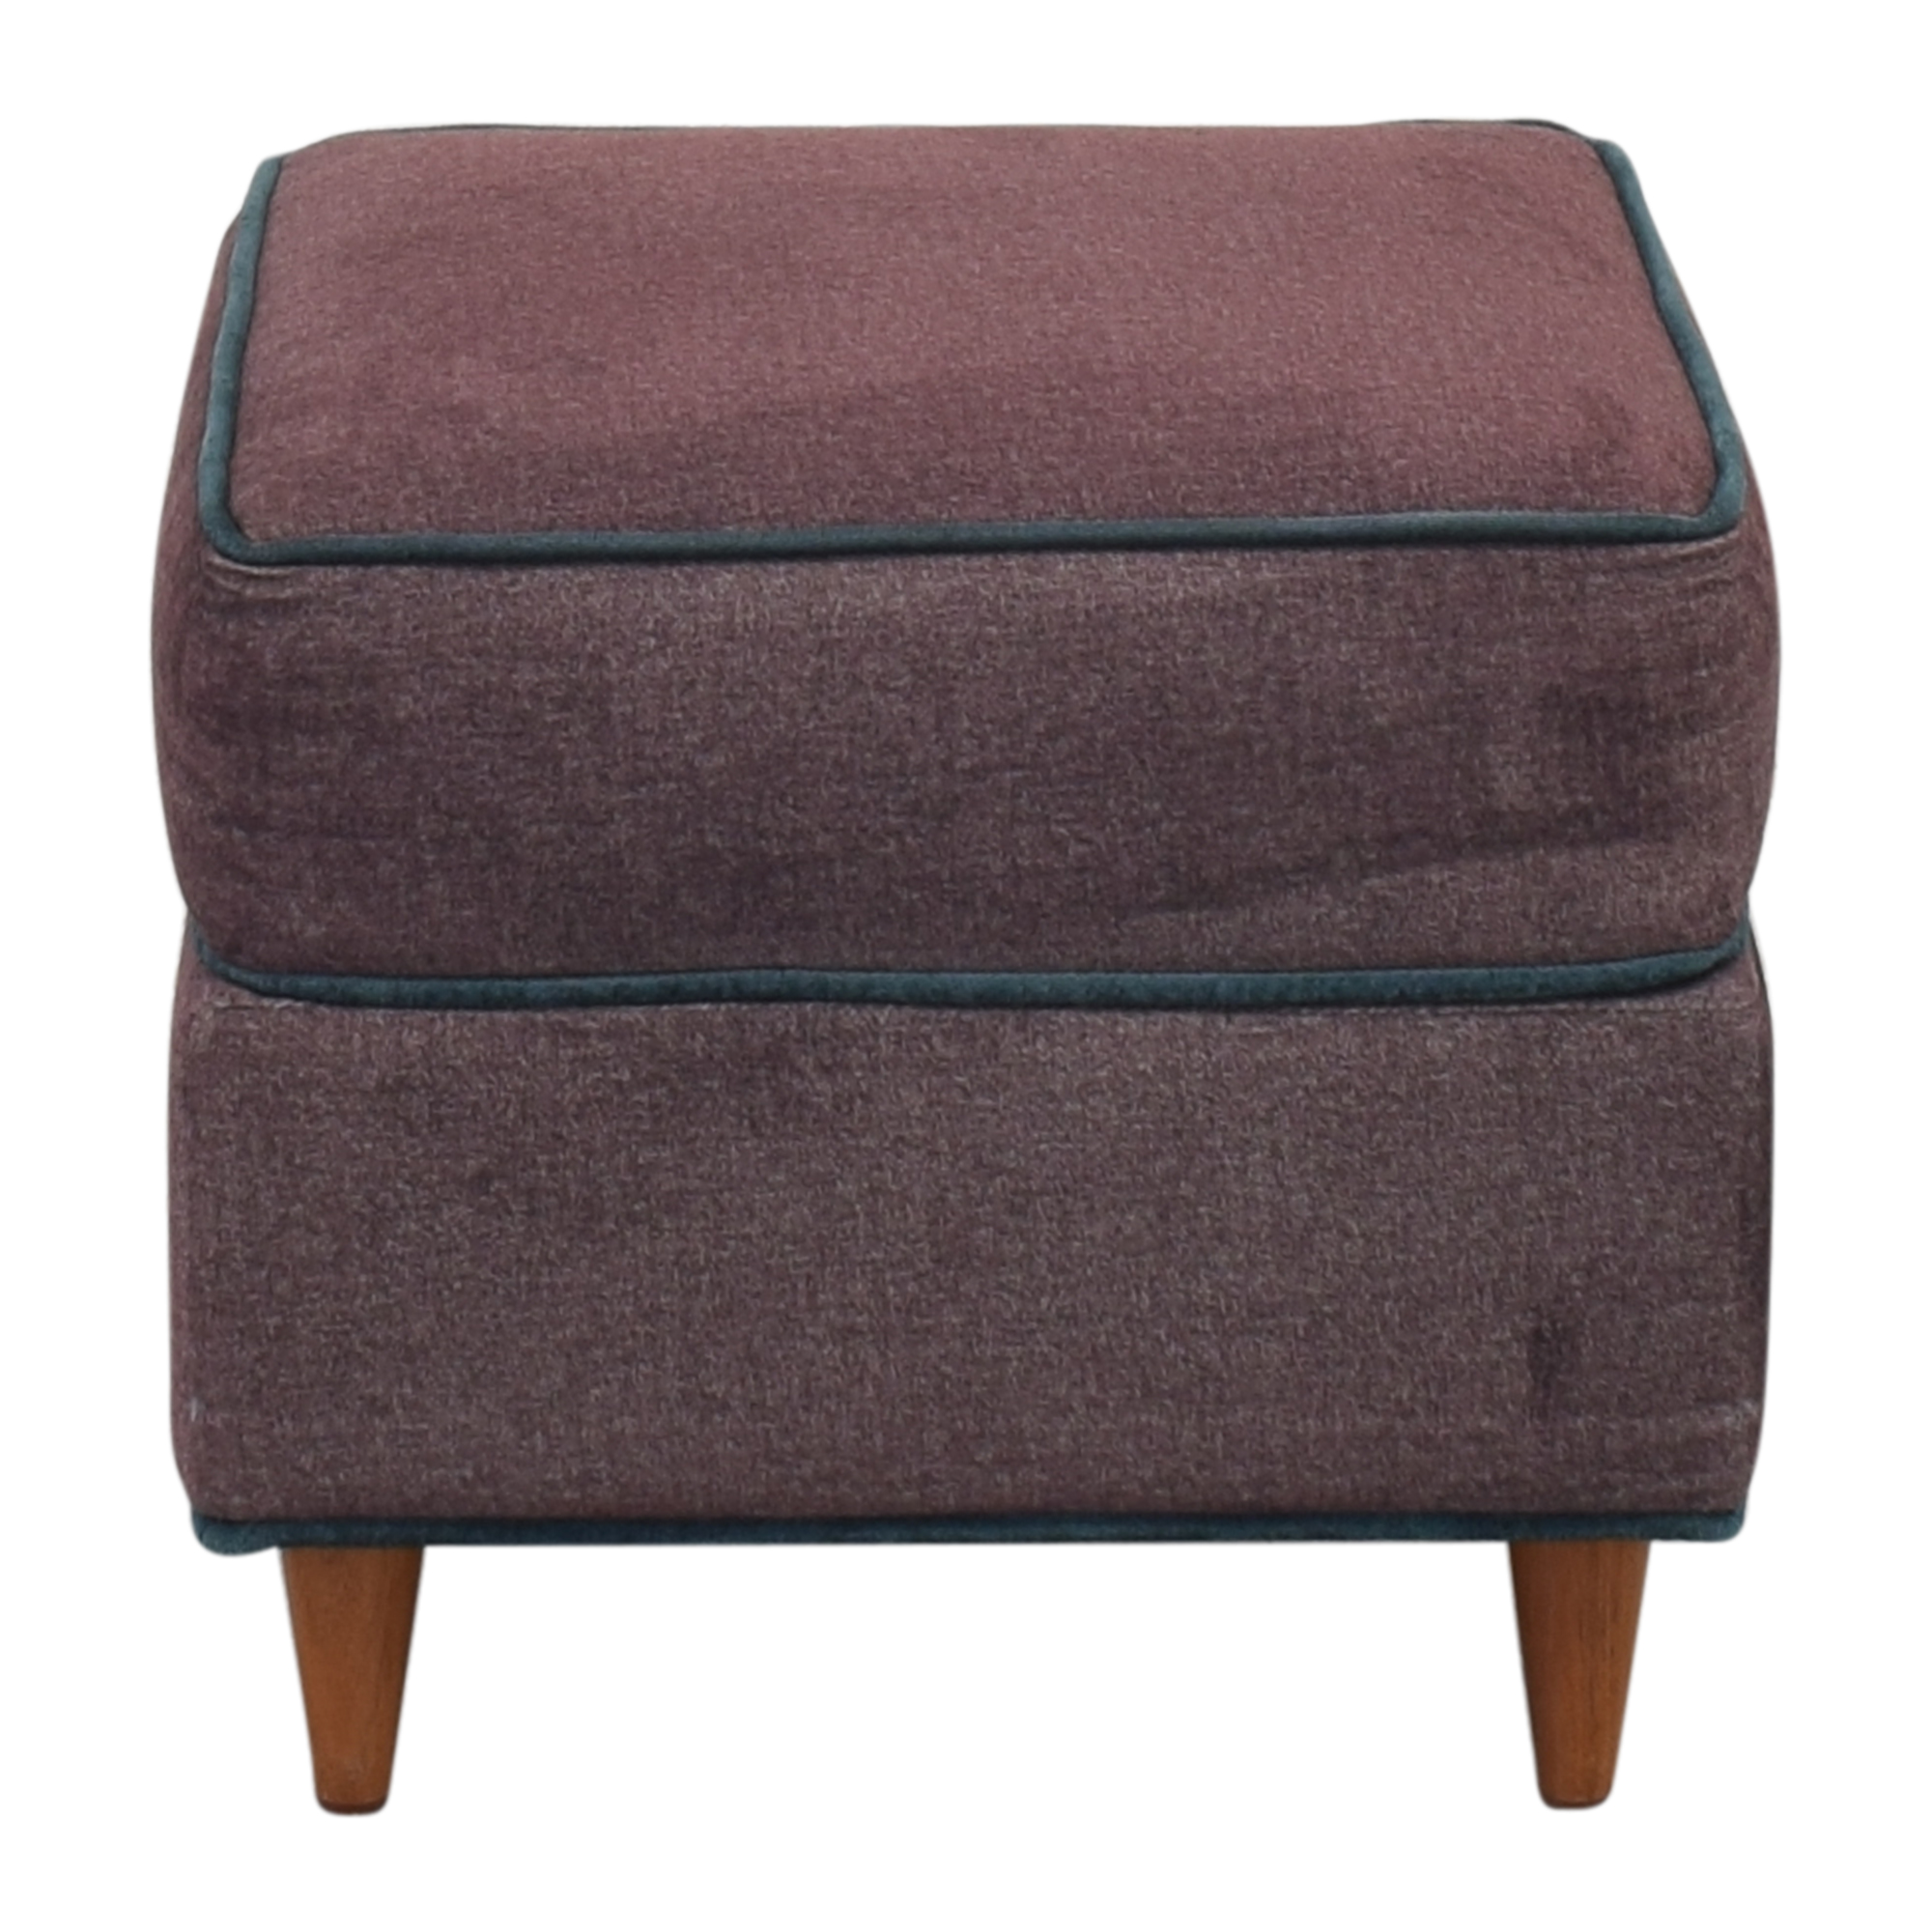 buy  Custom Upholstered Ottoman online